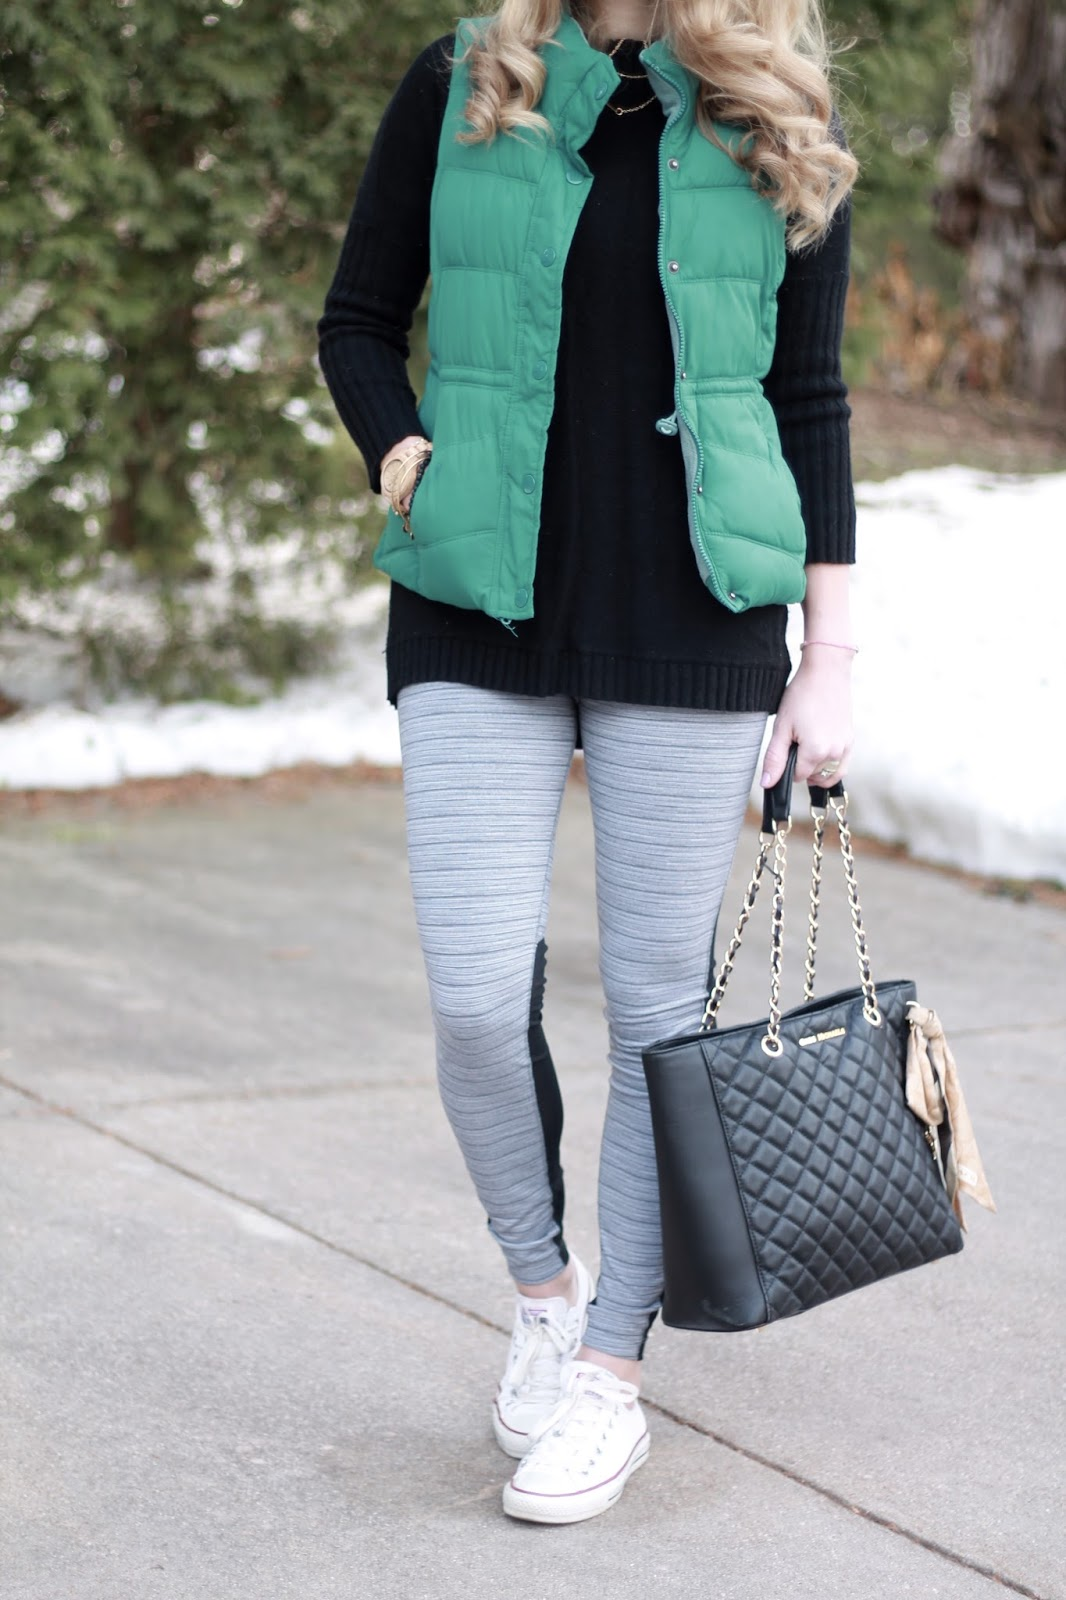 black tunic sweater, grey and mesh leggings, turquoise puffer vest, converse shoes, Greg michaels tote